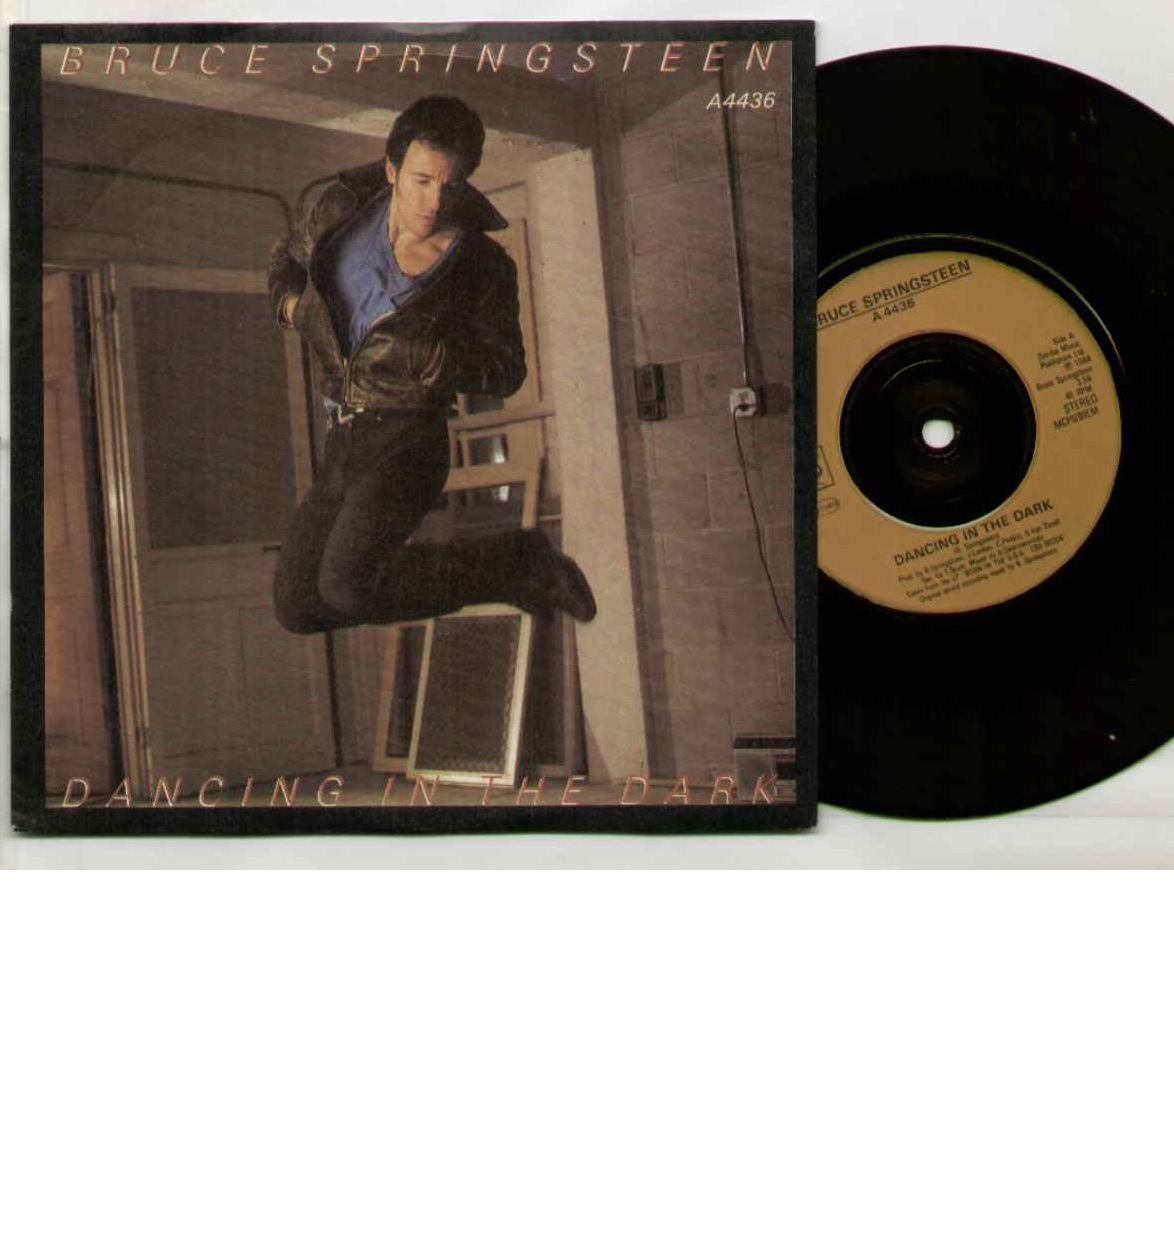 Bruce Springsteen - Dancing In The Dark Vinyl